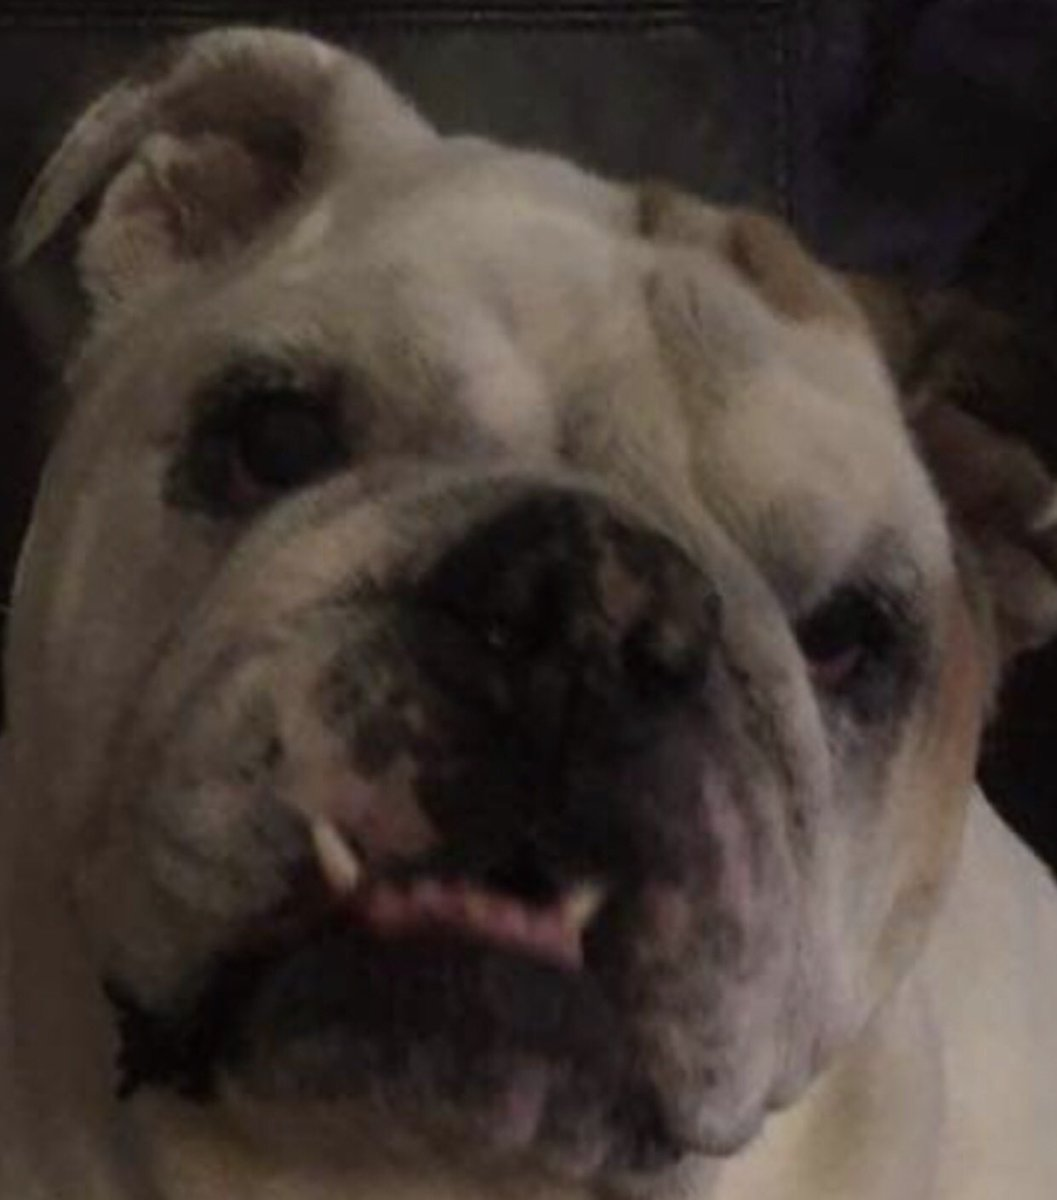 If you want to stay Healthy.. You have got to eat a Balanced Diet A Biscuit in one Paw...Burrito in the other...that should do it..Balanced.. Love, Gertie the Bulldog  #gertiethebulldog #BalancedDiet #biscuits #SaturdayThoughts #dogsoftwitter #catsoftwitter #bulldog #Dog<br>http://pic.twitter.com/qo3qORE2f8